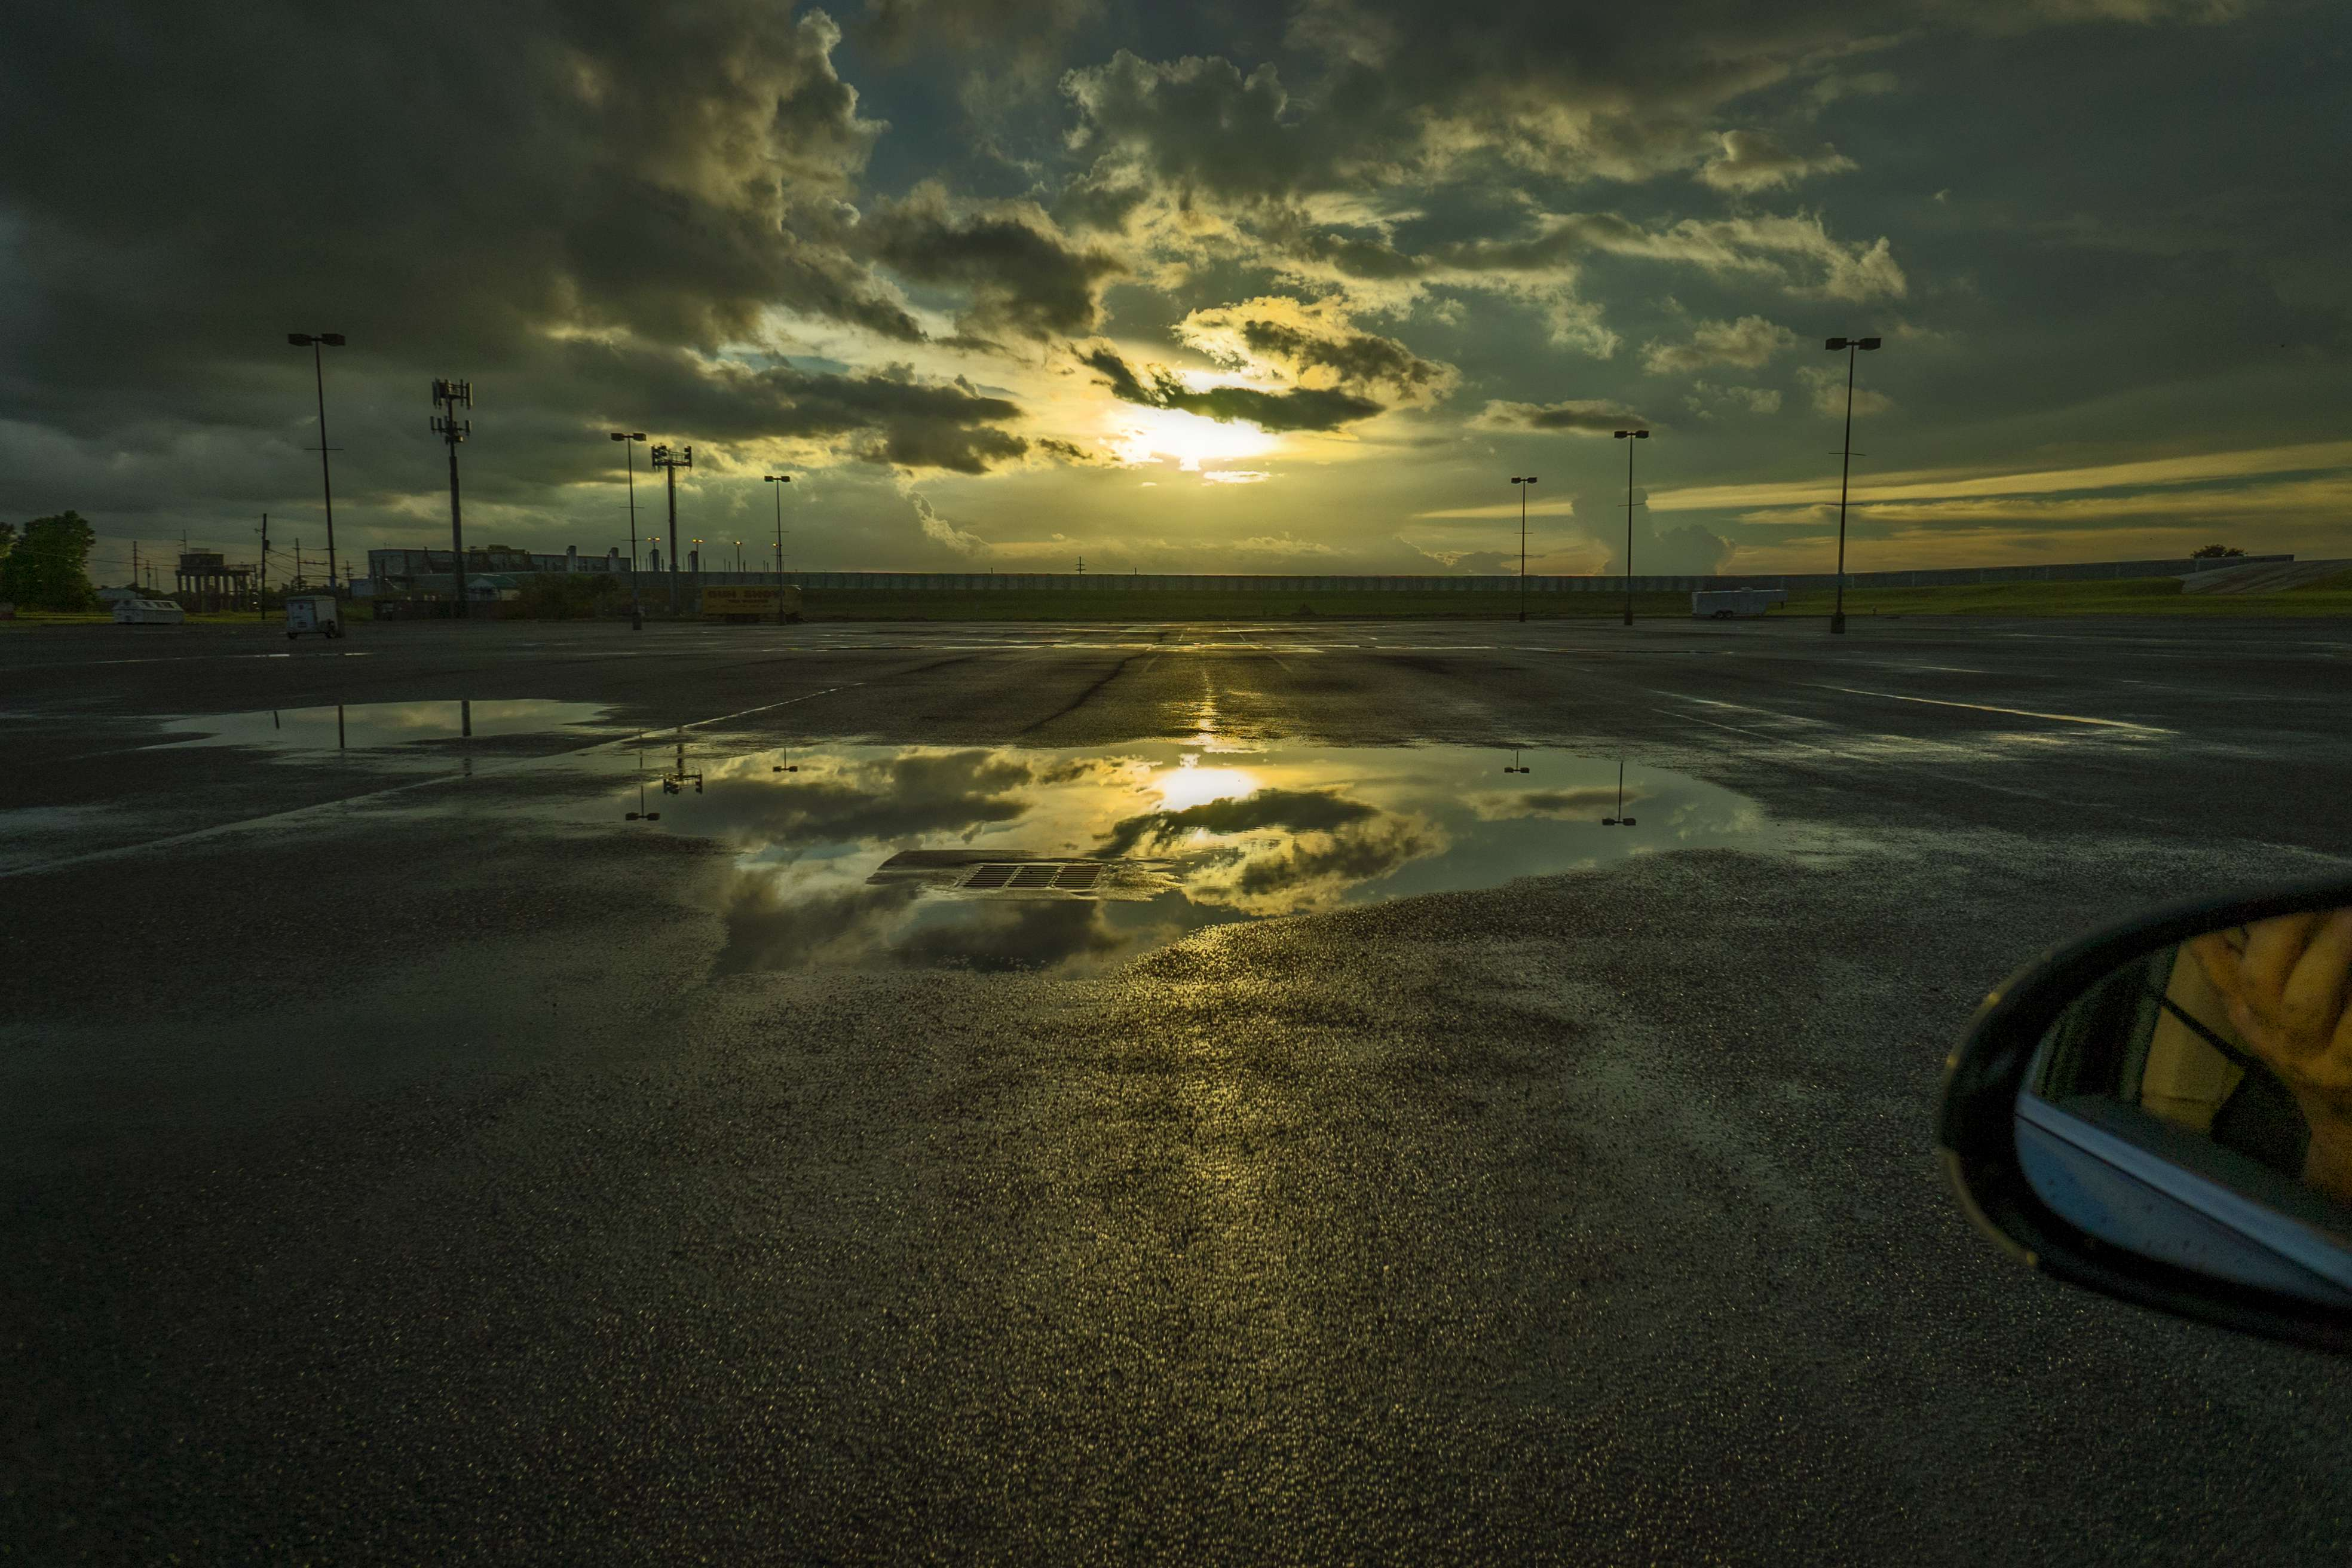 A giant parking lot, storm water and a sunset.